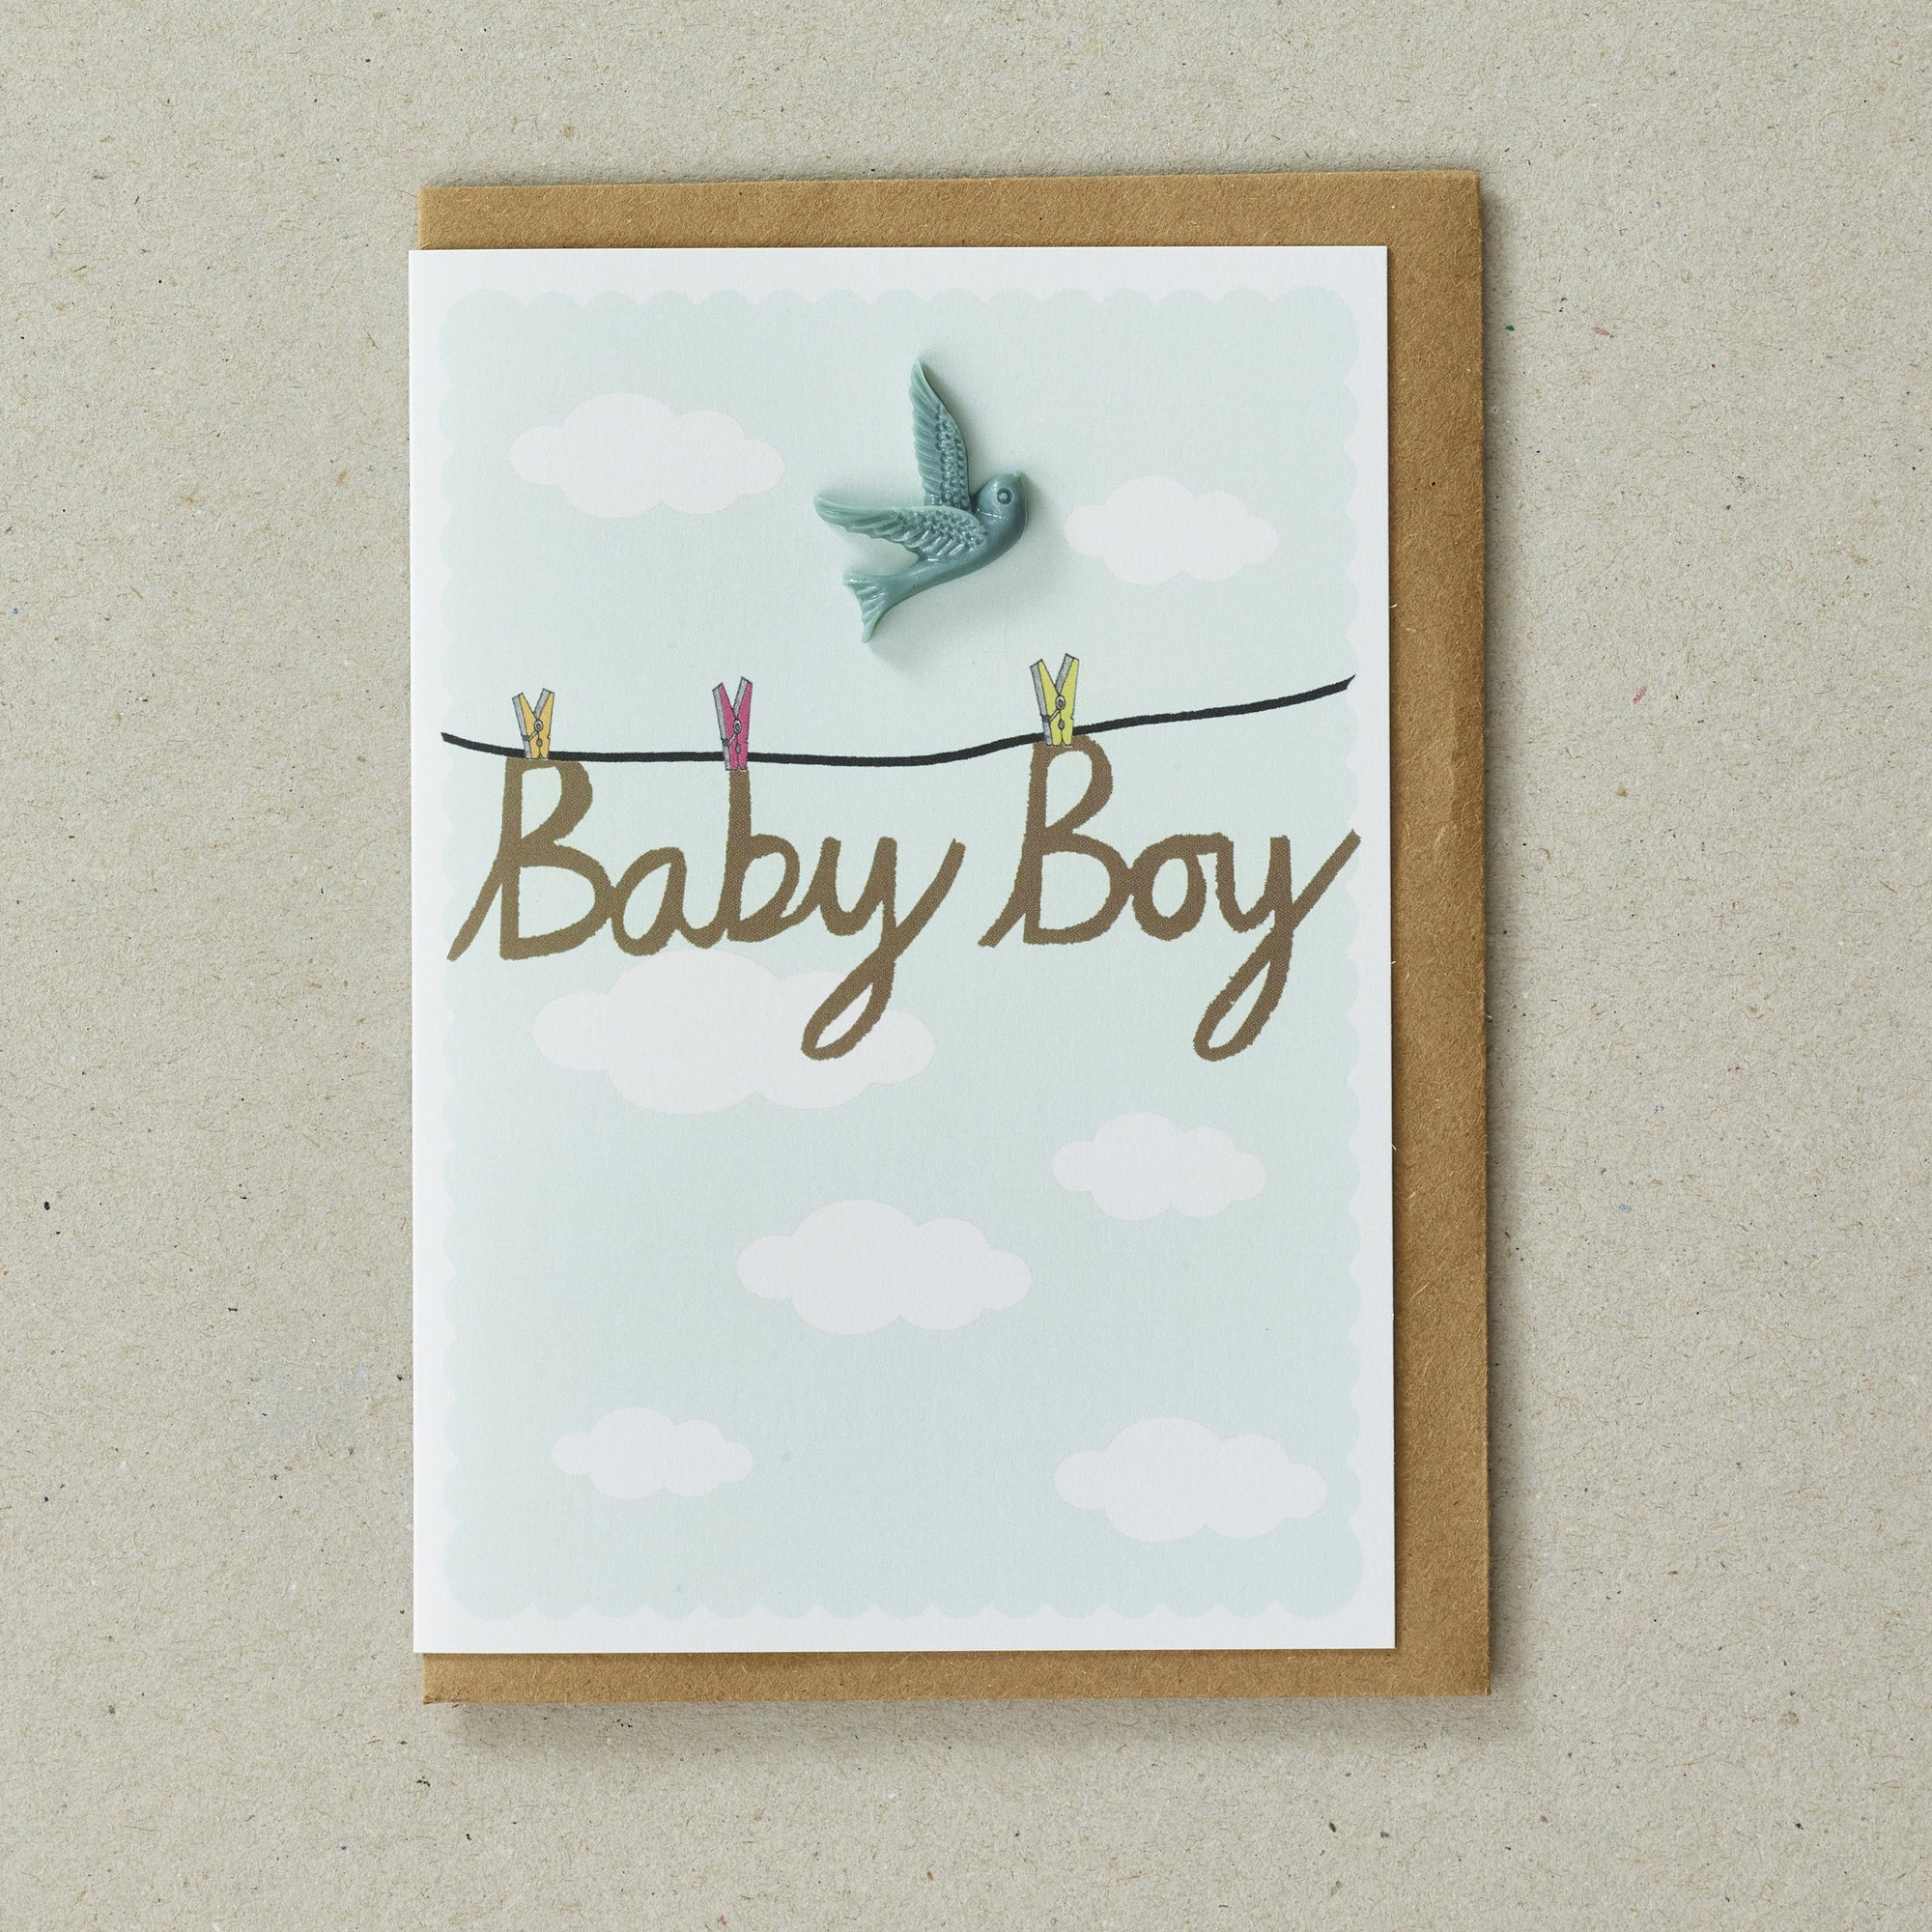 Baby Boy Resin Bird Gift Card - BouChic